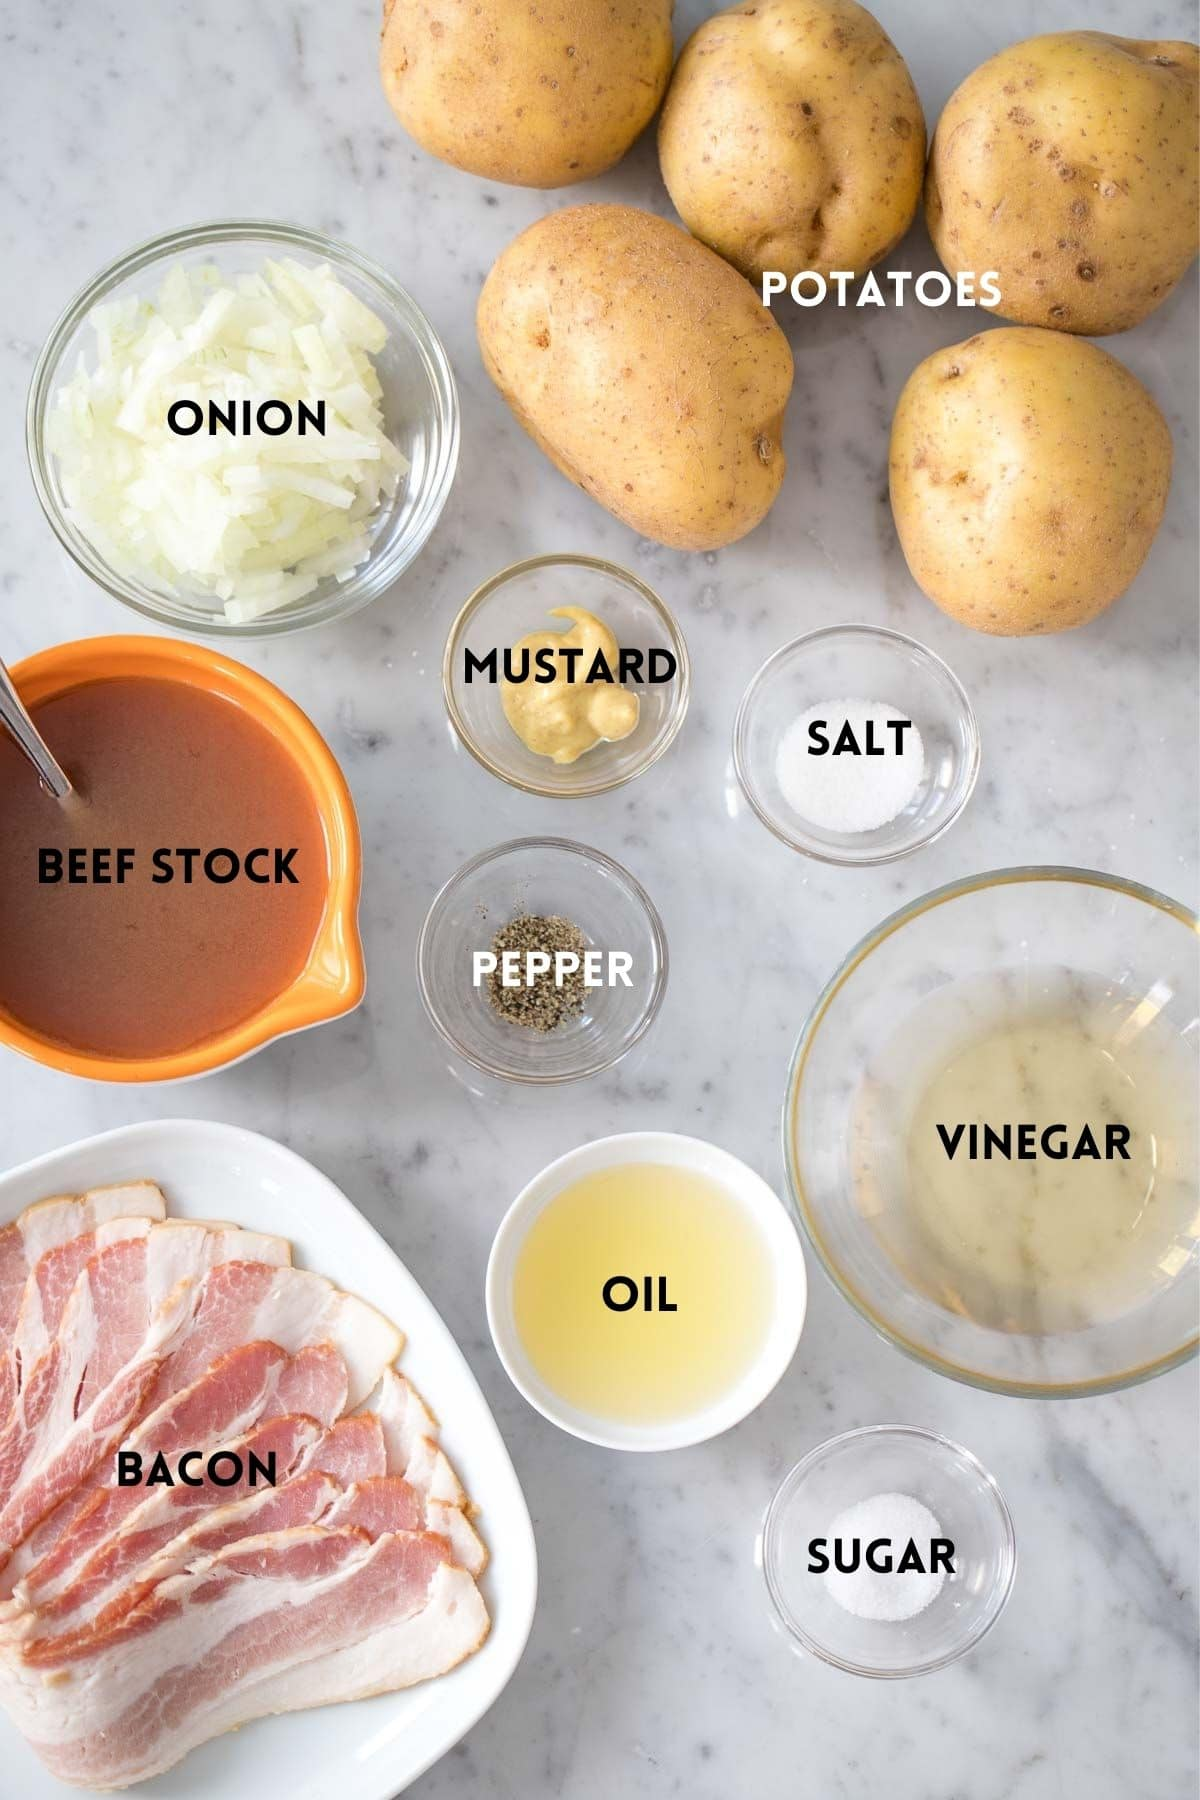 Ingredients needed for potato salad